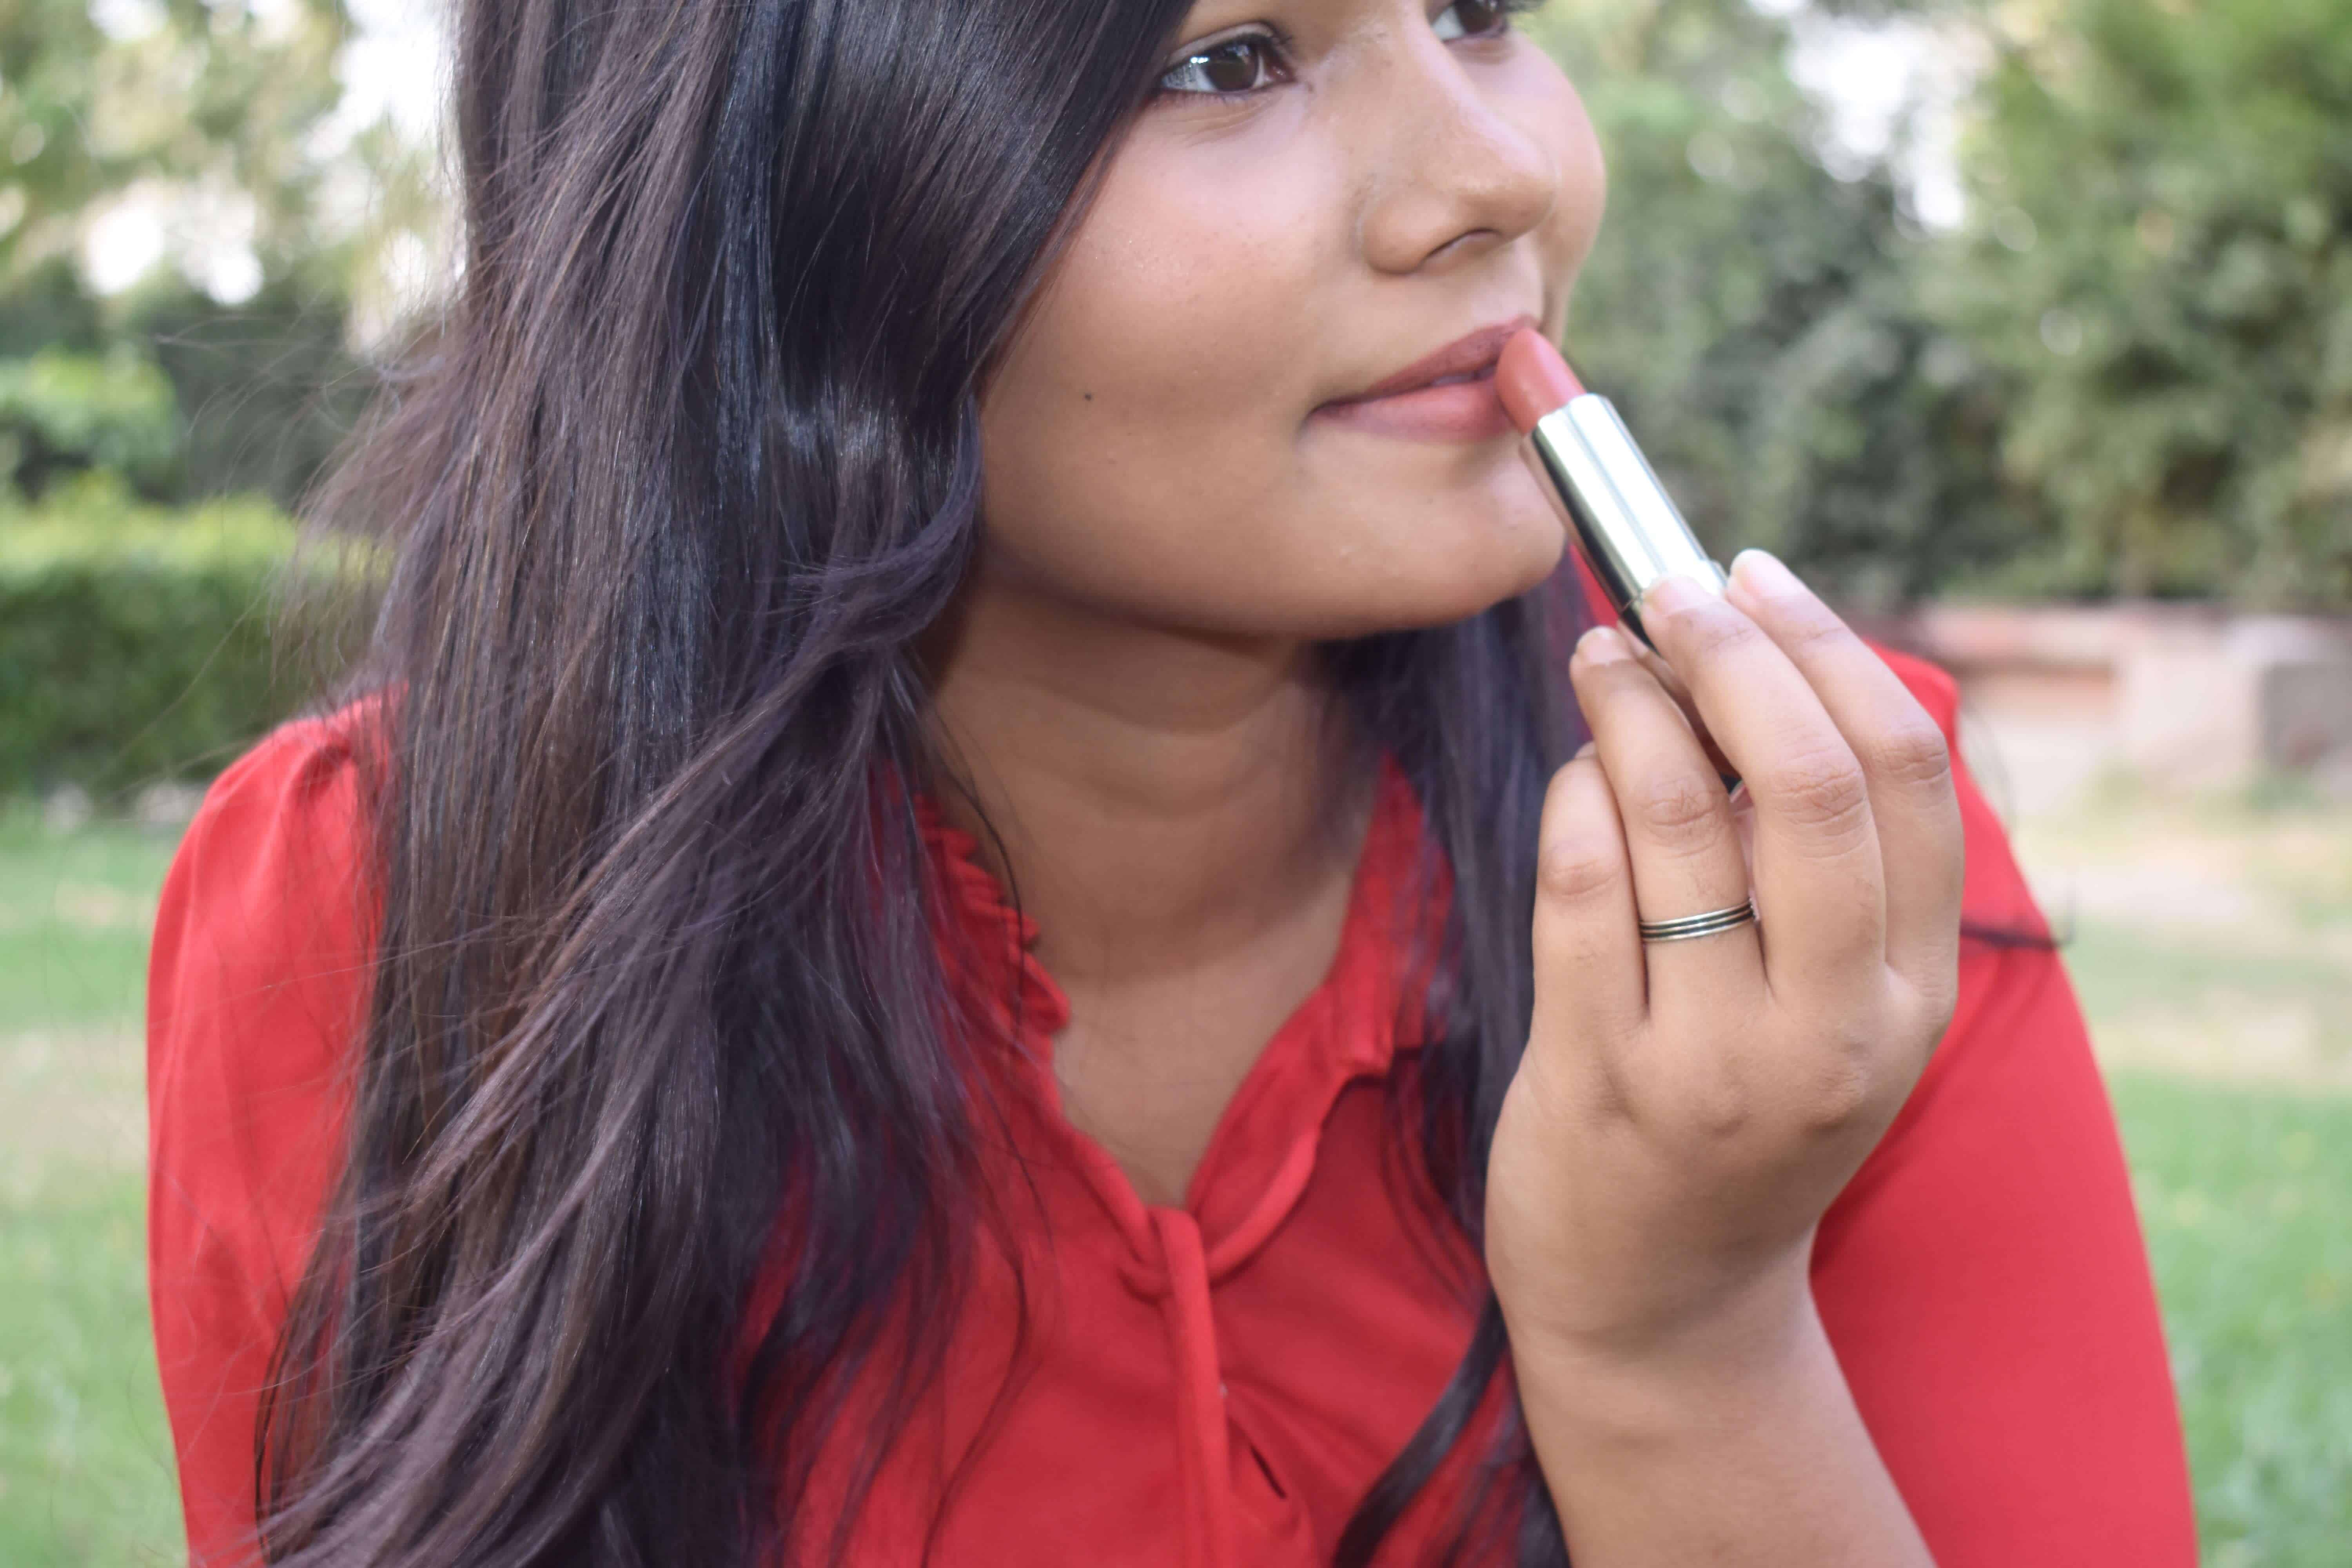 Maybelline Inti Matte Nudes Lipstick Toasted Brown Review & Swatches